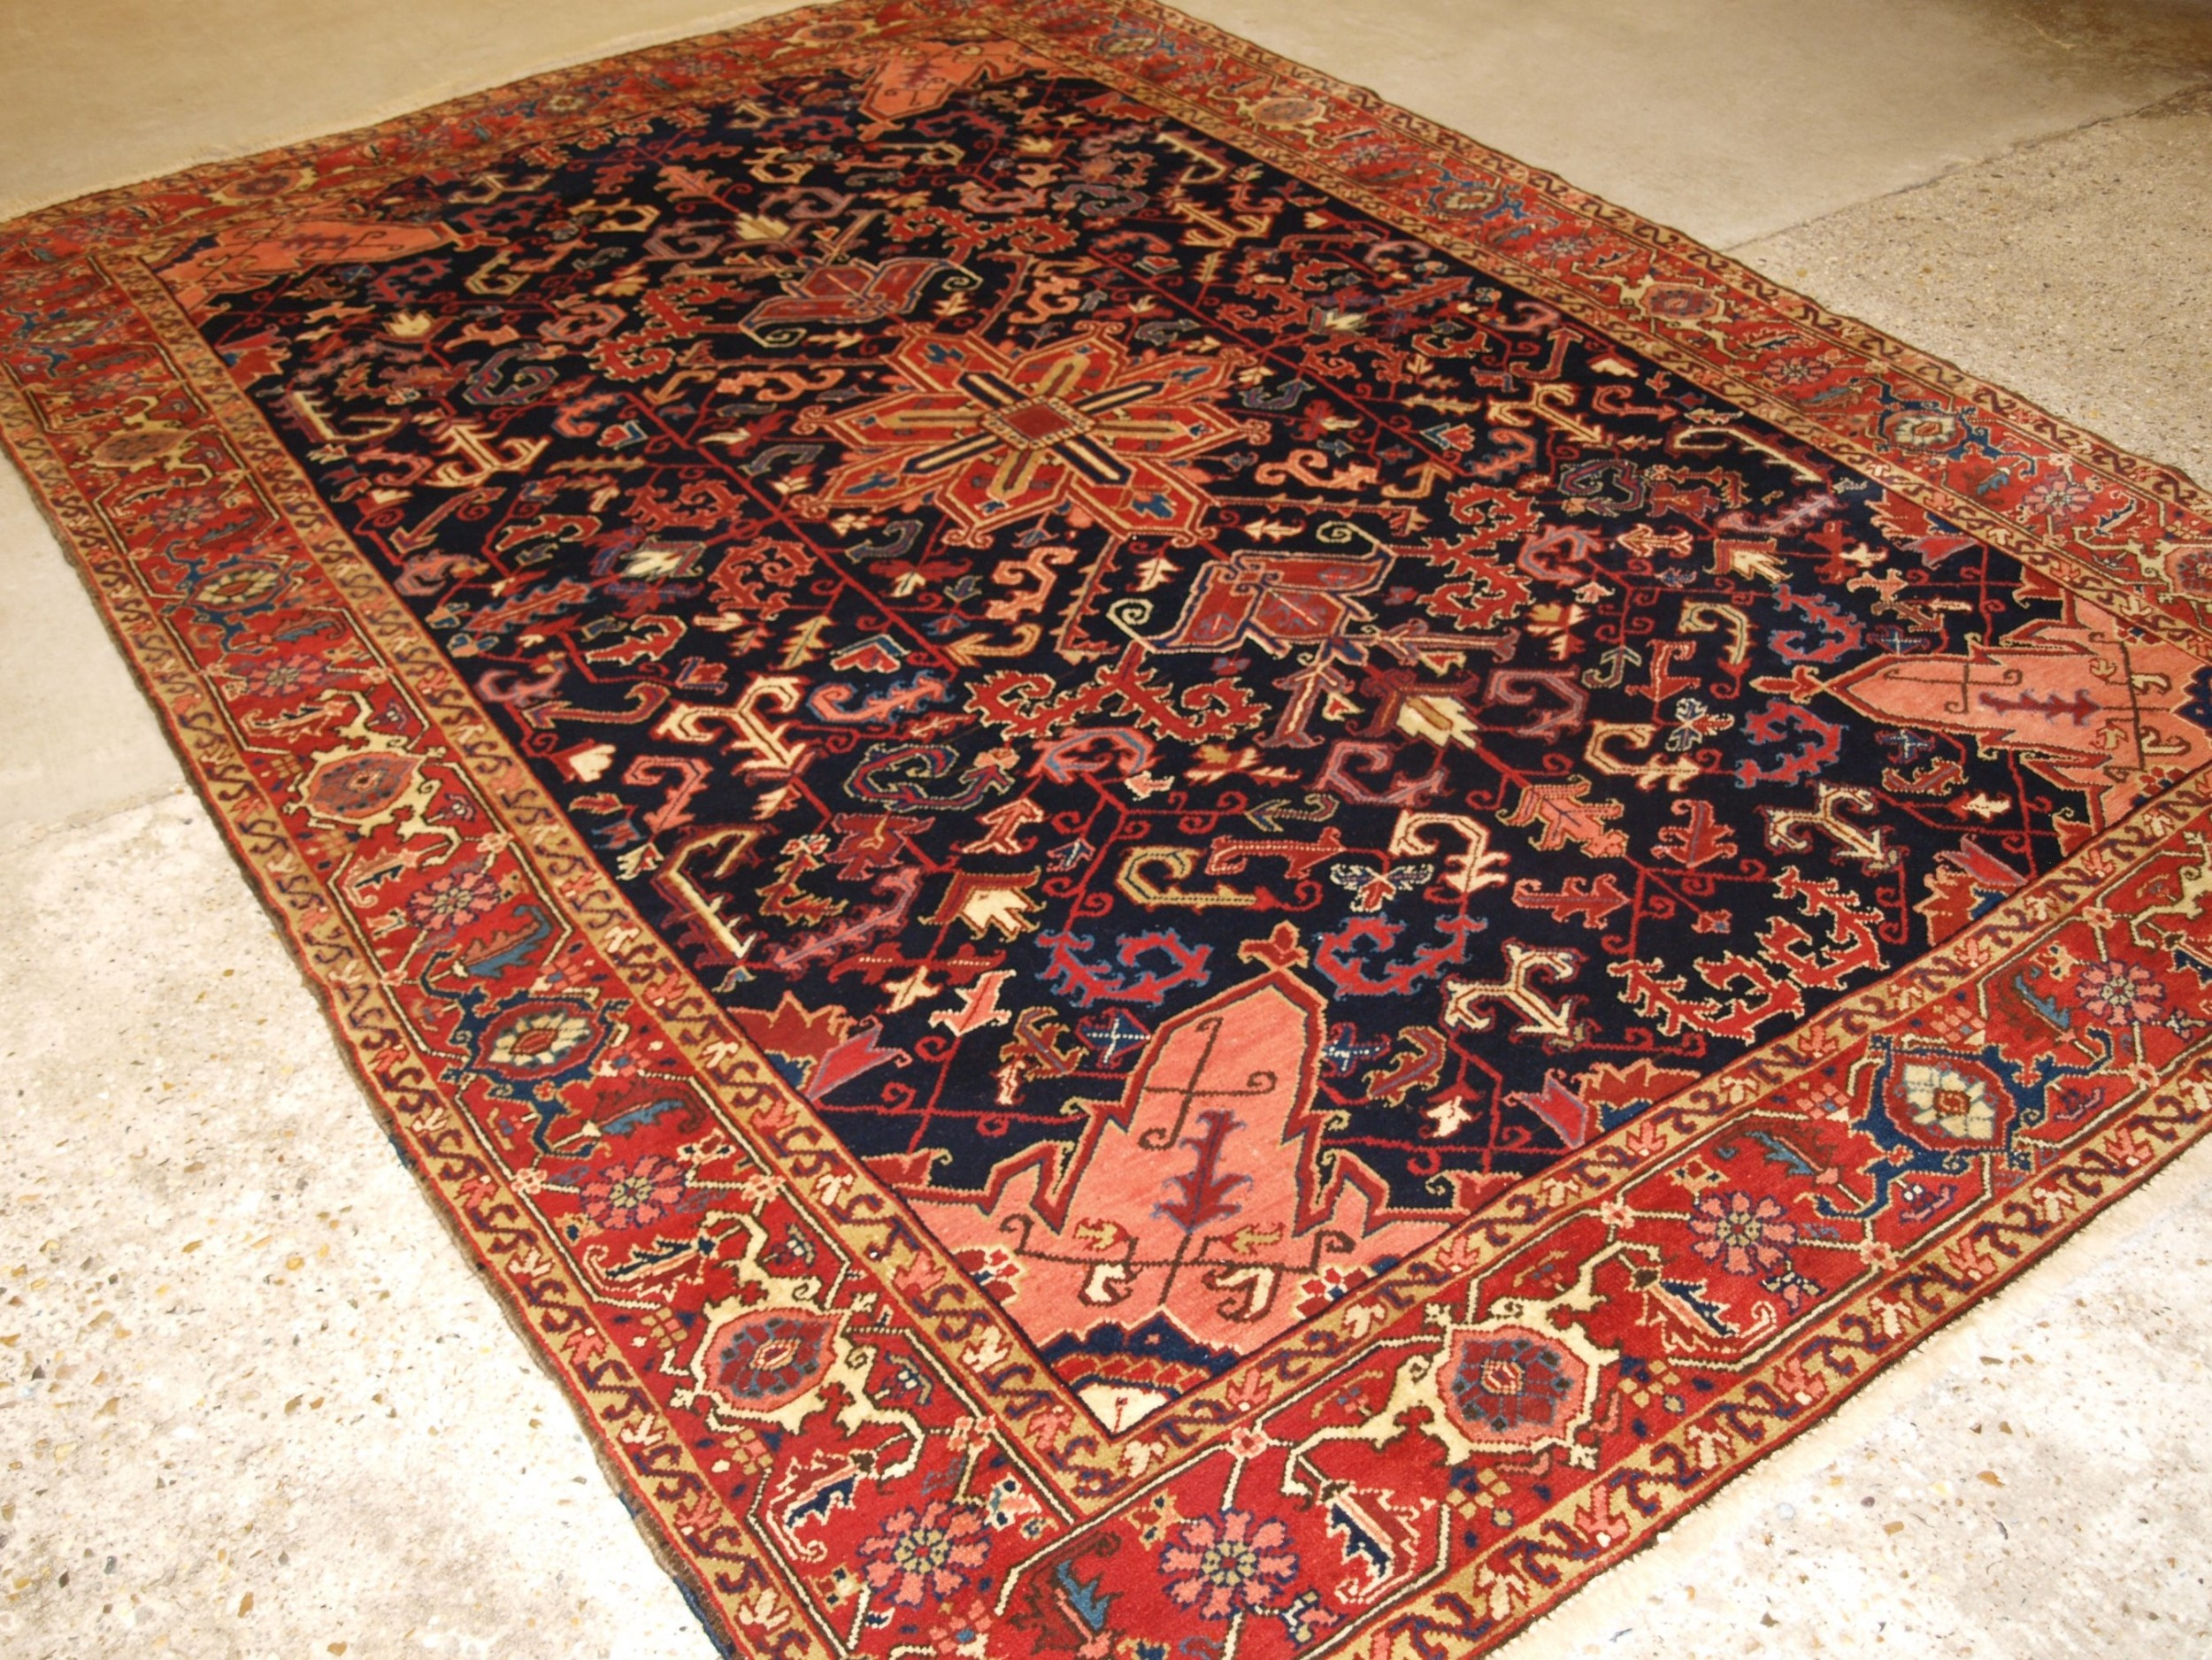 antique persian heriz carpet striking colour and design great condition circa 1920